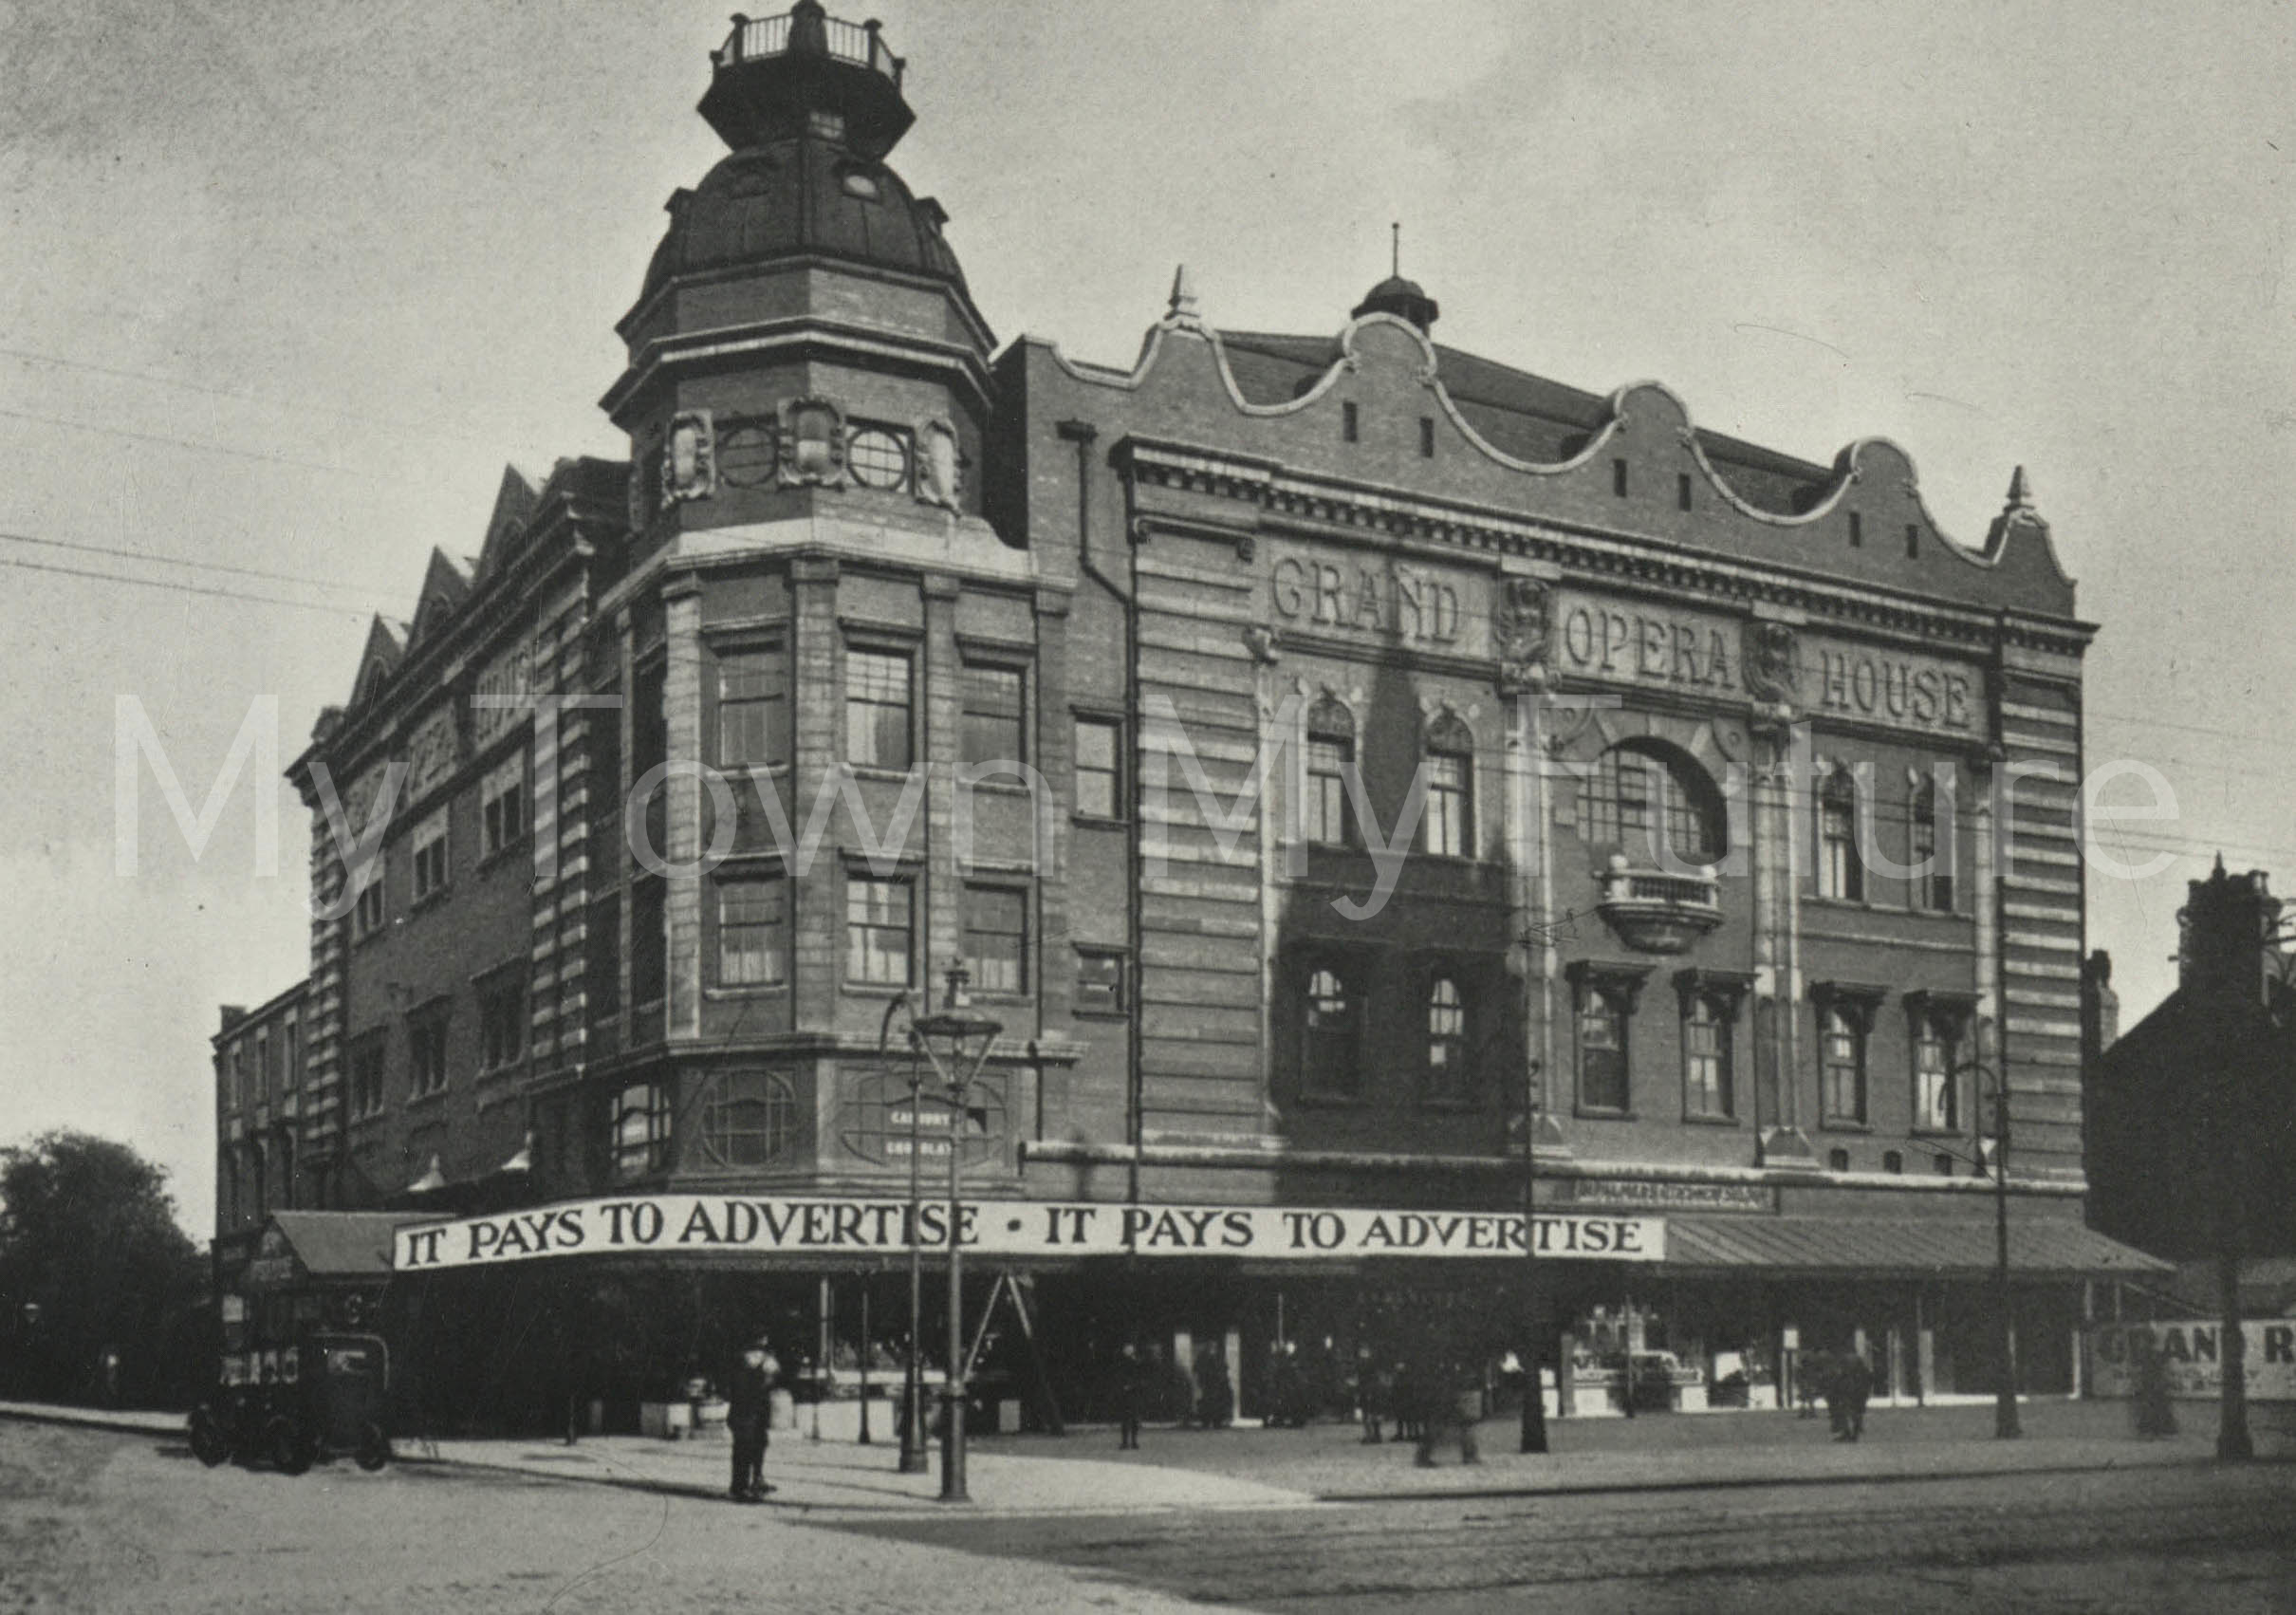 A photo of the Grand Opera House Linthorpe Road, Middlesbrough